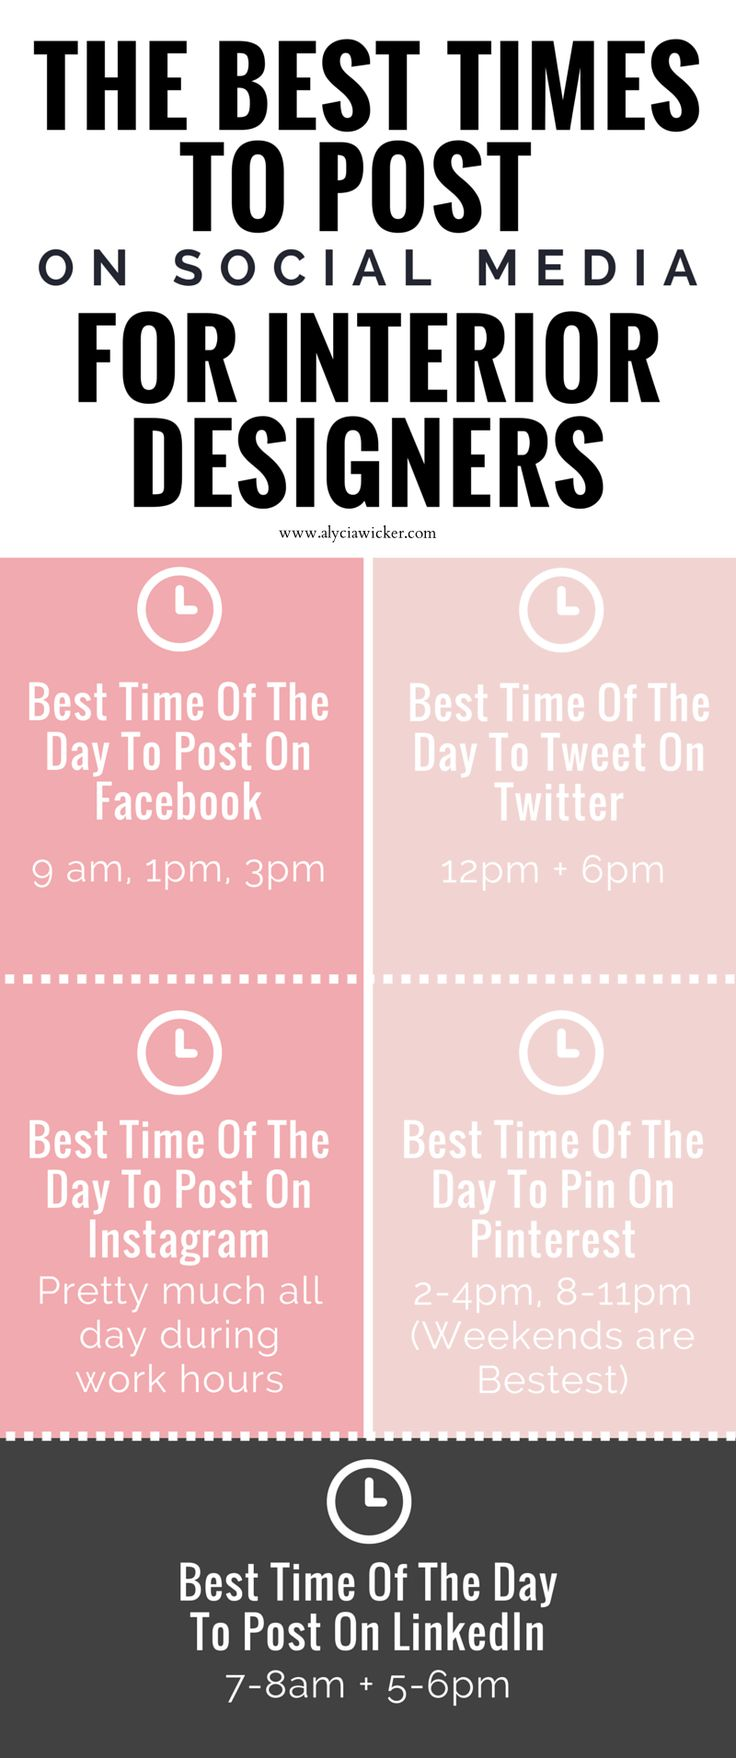 Superior The Best Times To Post On Social Media